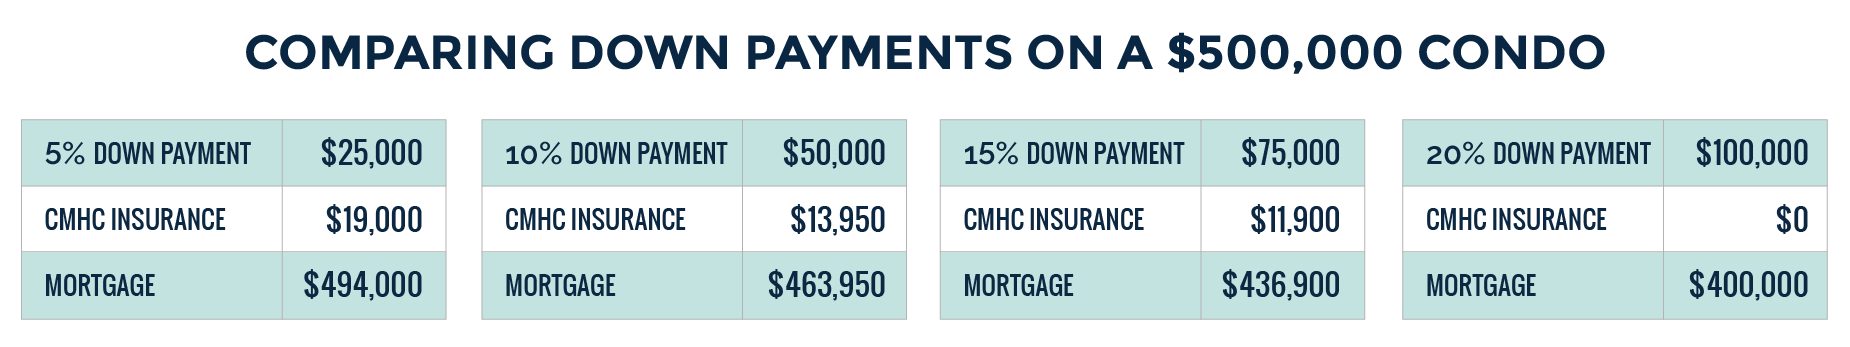 Chart showing different down payment break downs on a $500K condo